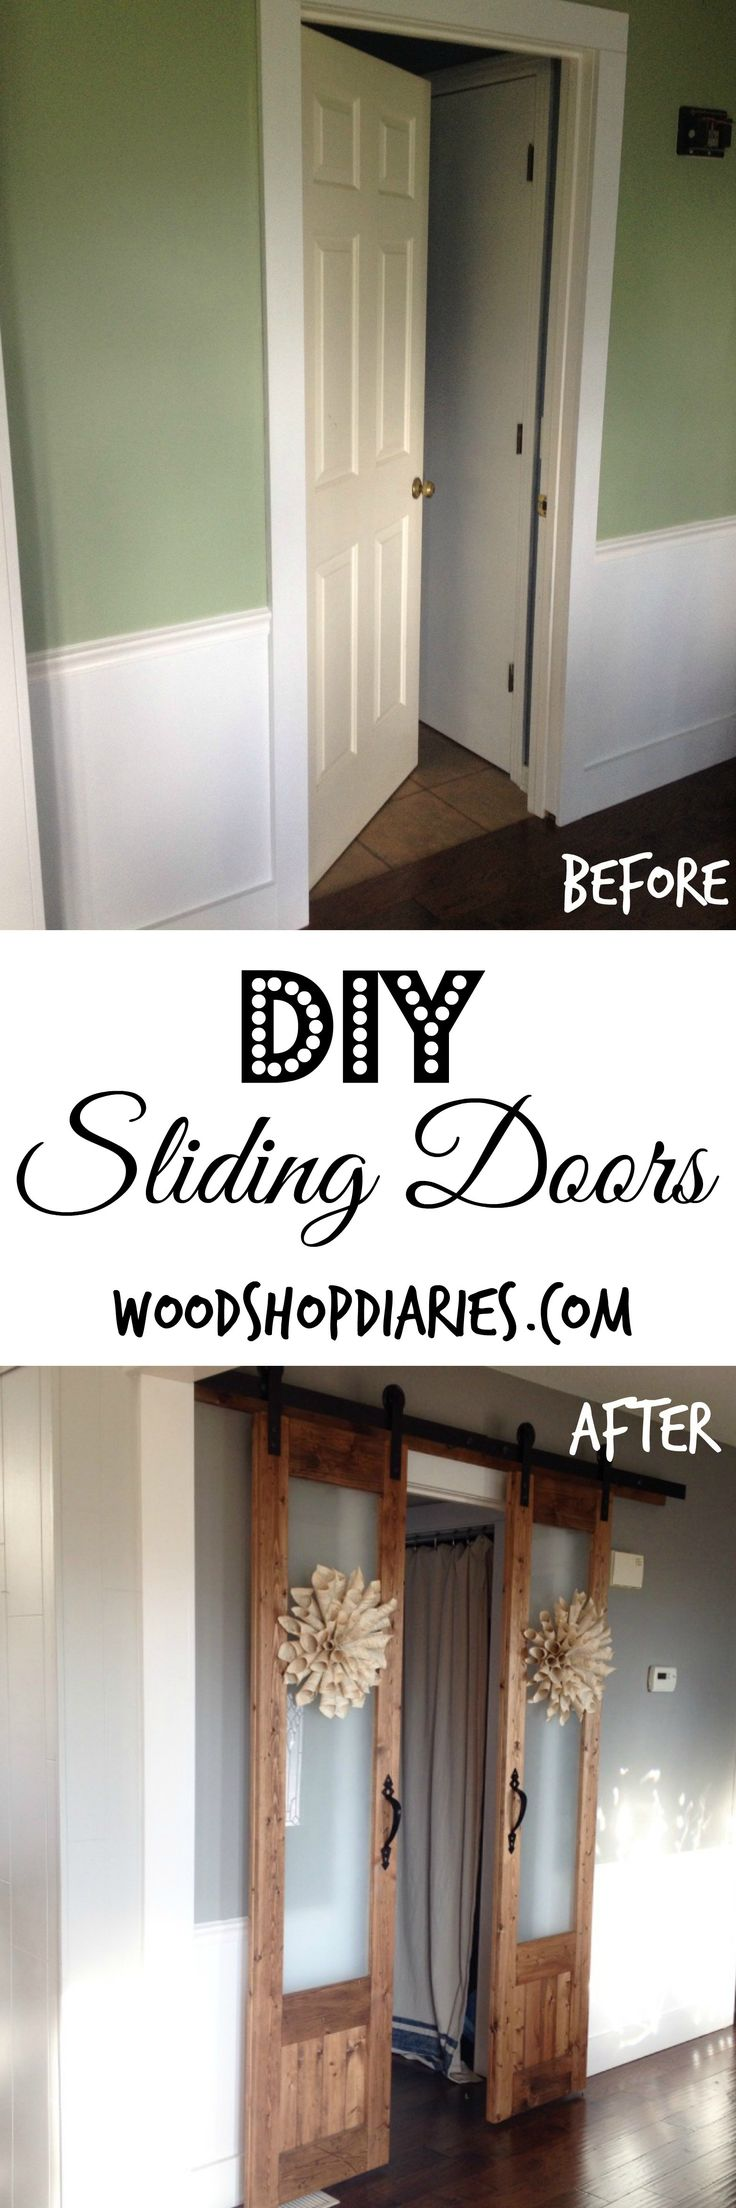 Best 25+ Diy sliding door ideas on Pinterest | Interior barn doors ...